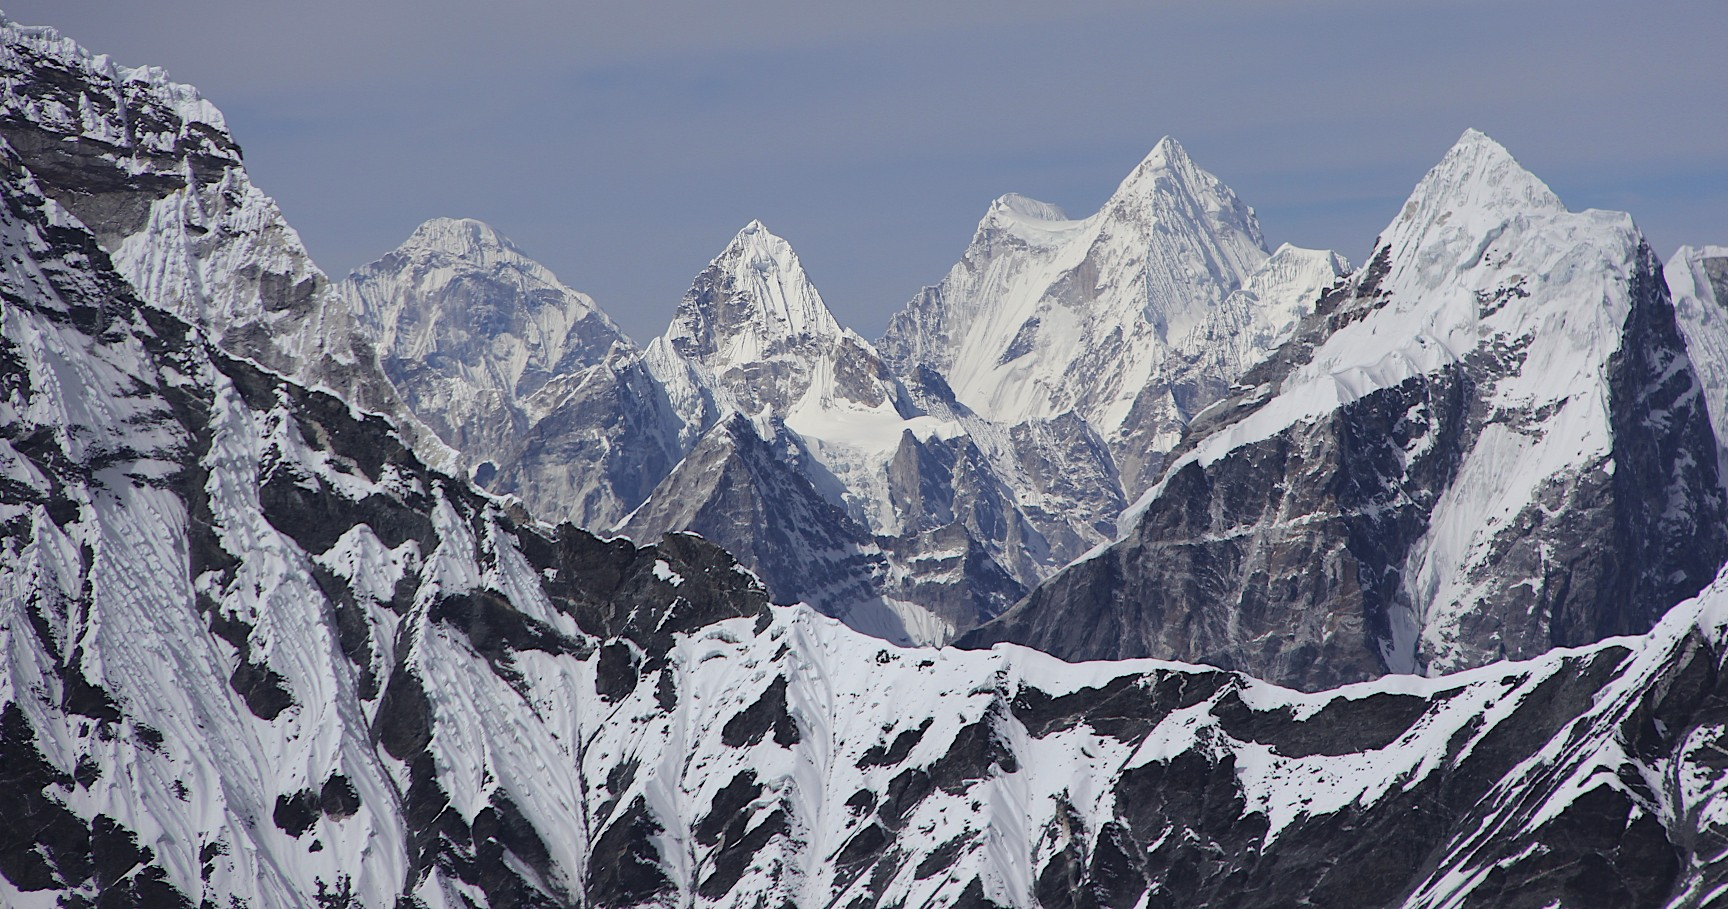 Mt. Menlungtse (looks like a saddle) in Tibet from the West Col.